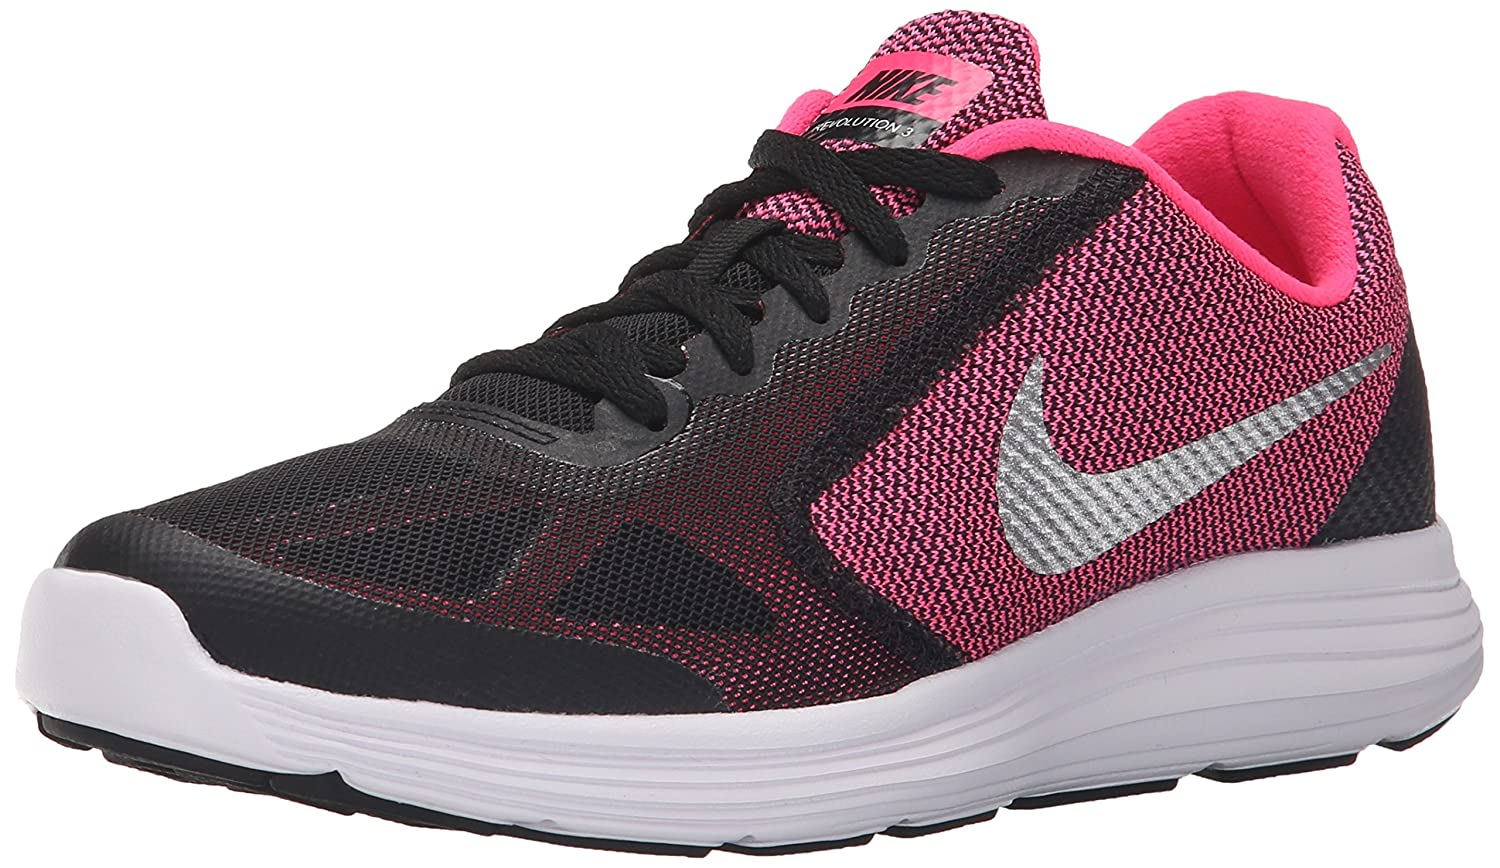 NIKE ' Revolution 3 (GS) Running Shoes B00YQ3YUKI 4 M US Big Kid|Black/Metallic Silver/Hyper Pink/White